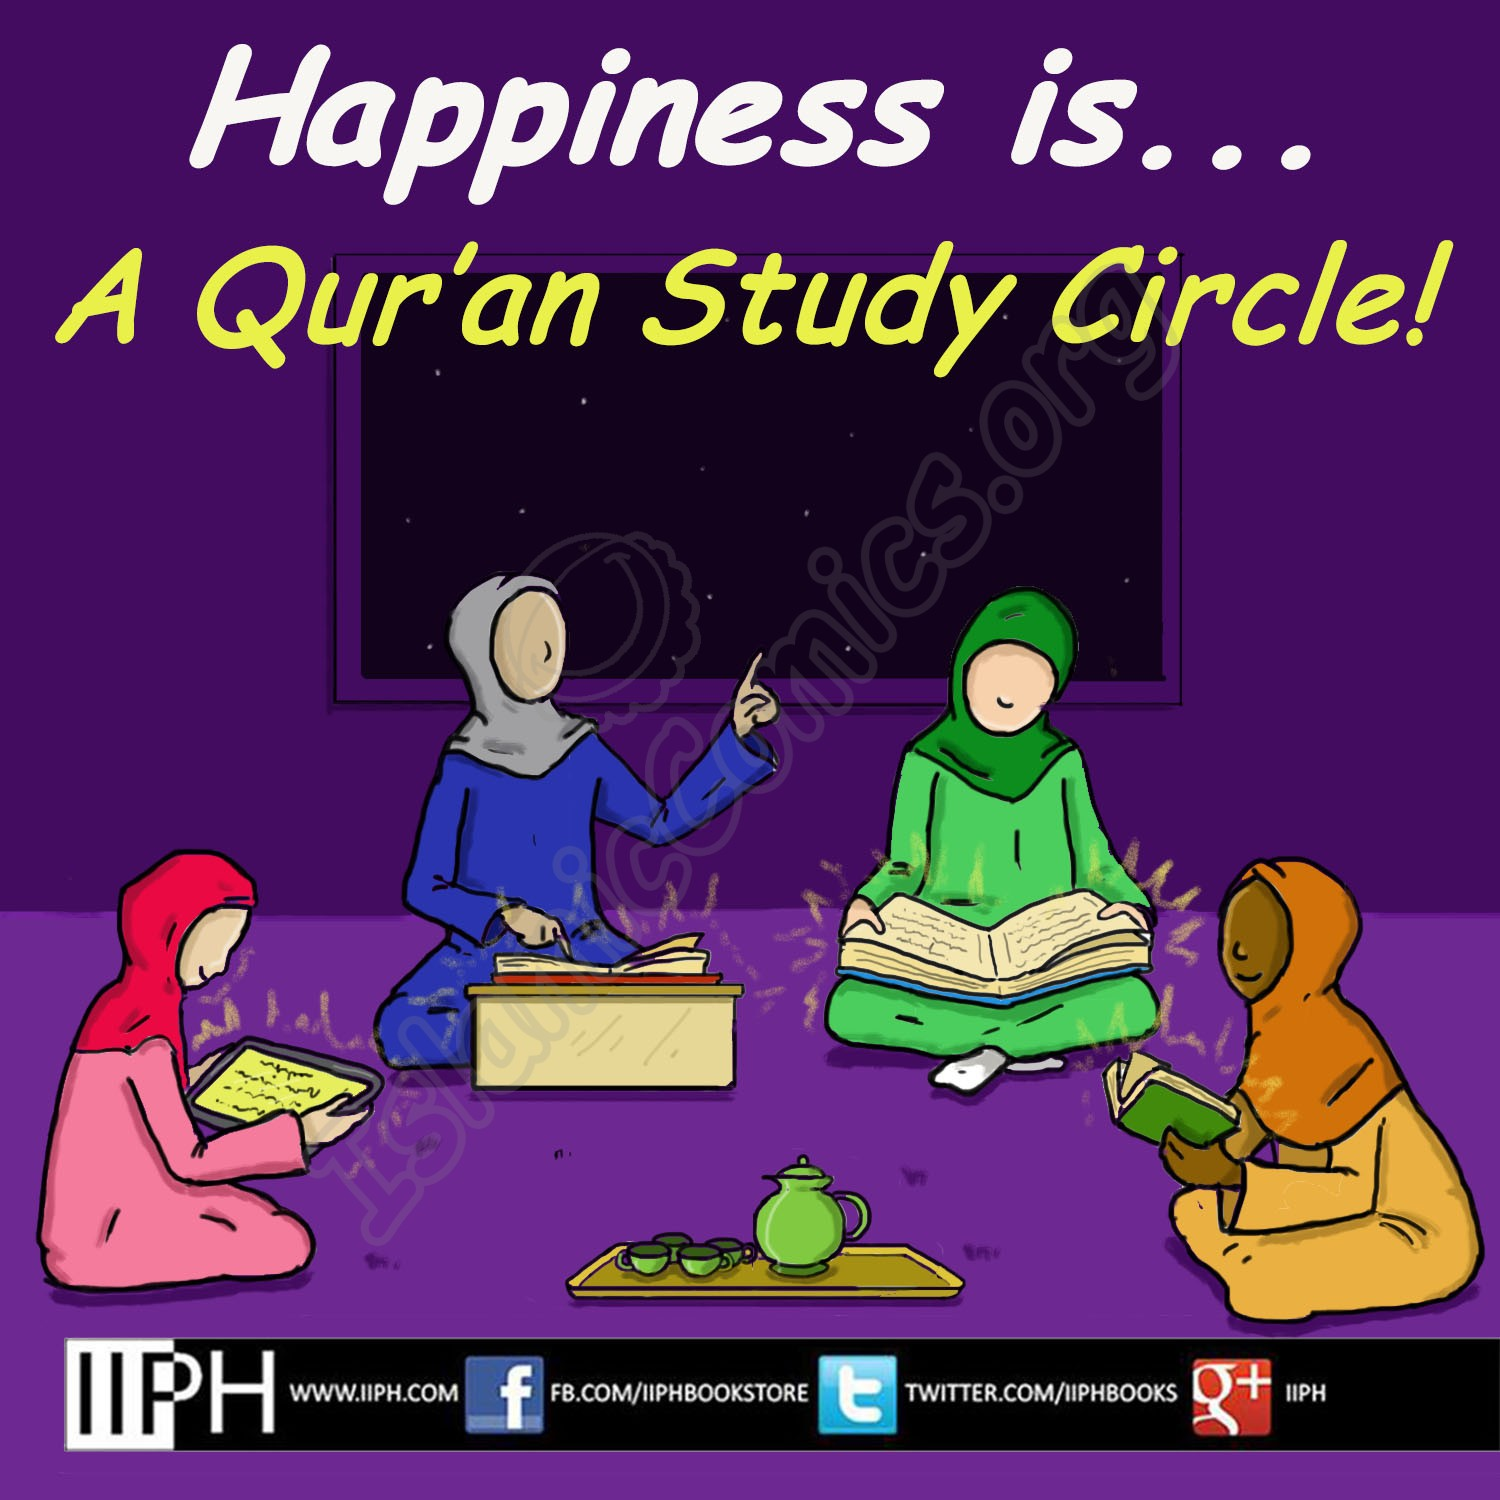 Happiness is... A Qur'an Study Circle - Islamic Illustrations (Islamic Comics)